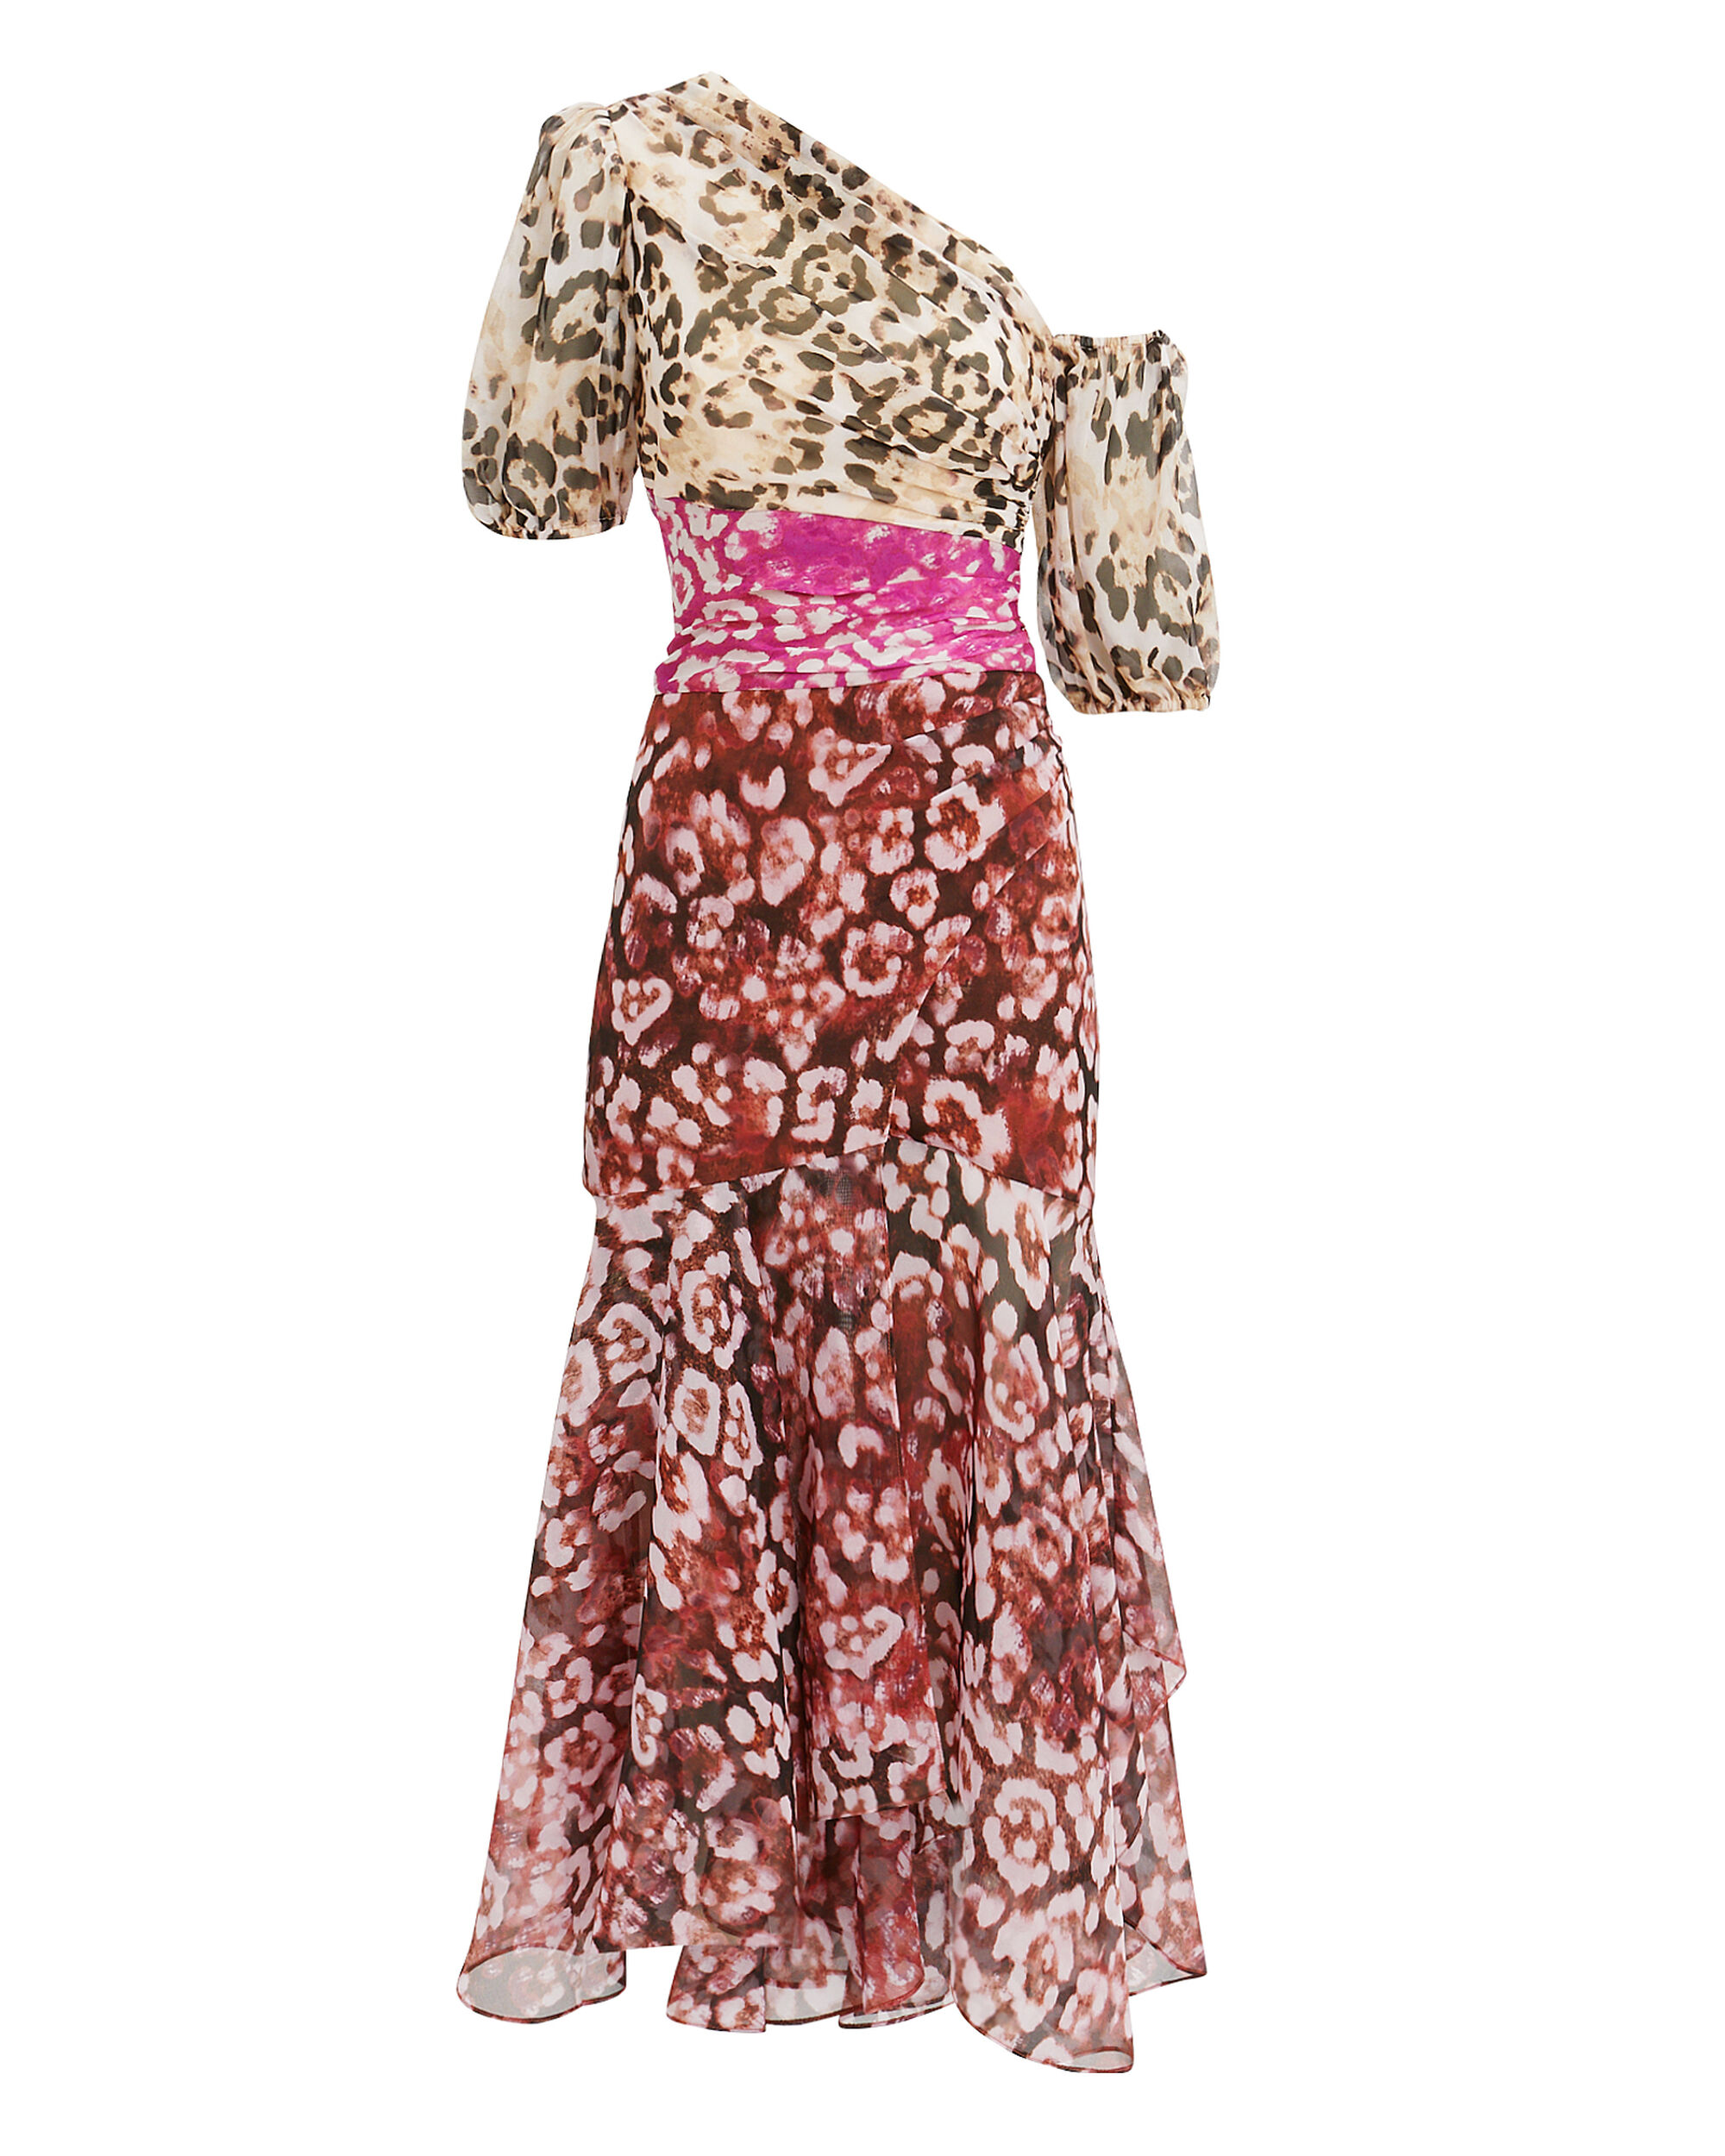 Jaylah Mixed Animal Print Dress, BROWN/PINK/RED LEOPARD, hi-res